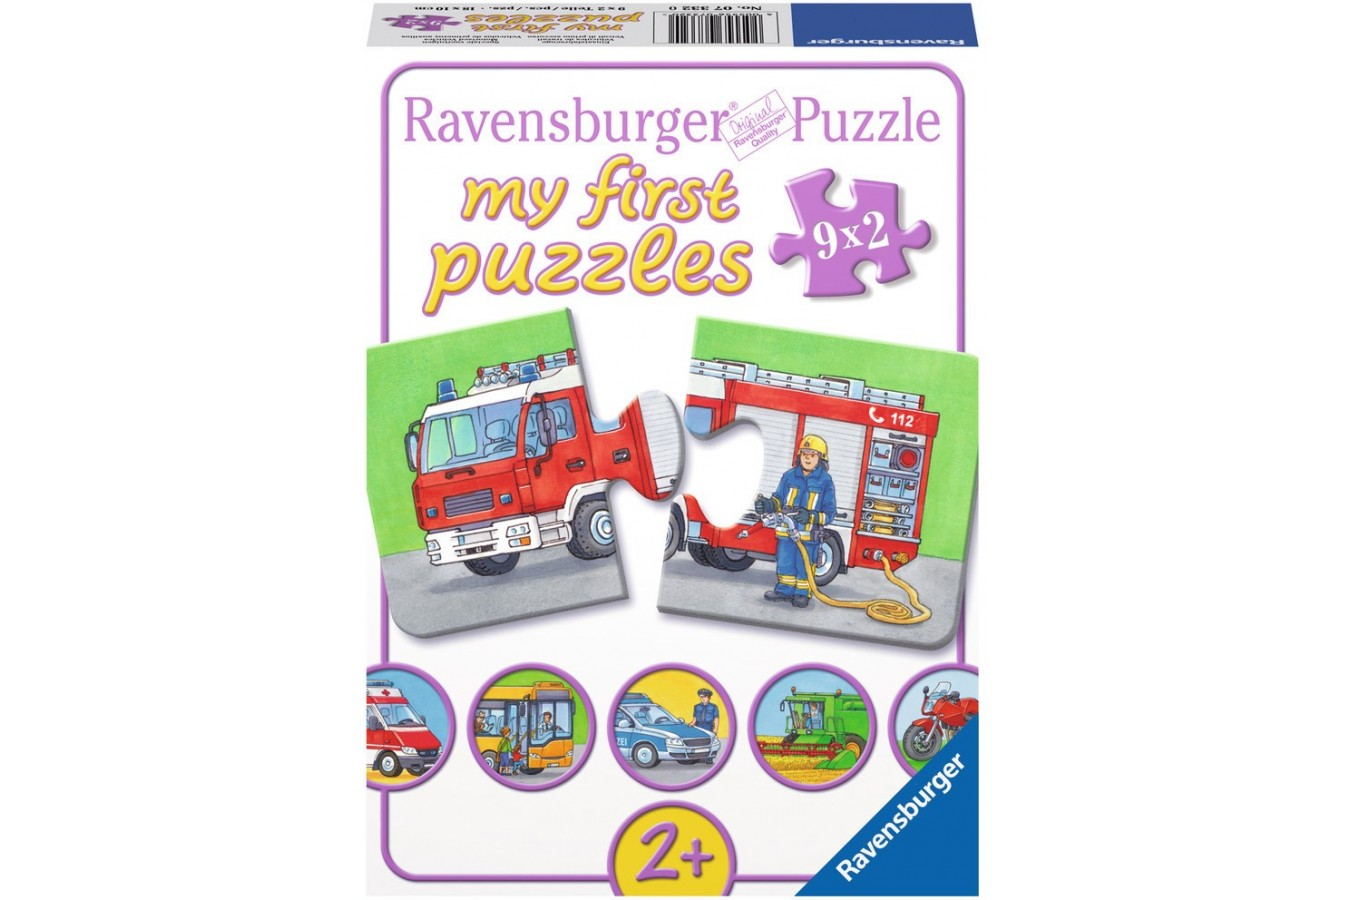 Puzzle Ravensburger - Vehicule Motorizate, 9x2 piese (07332)